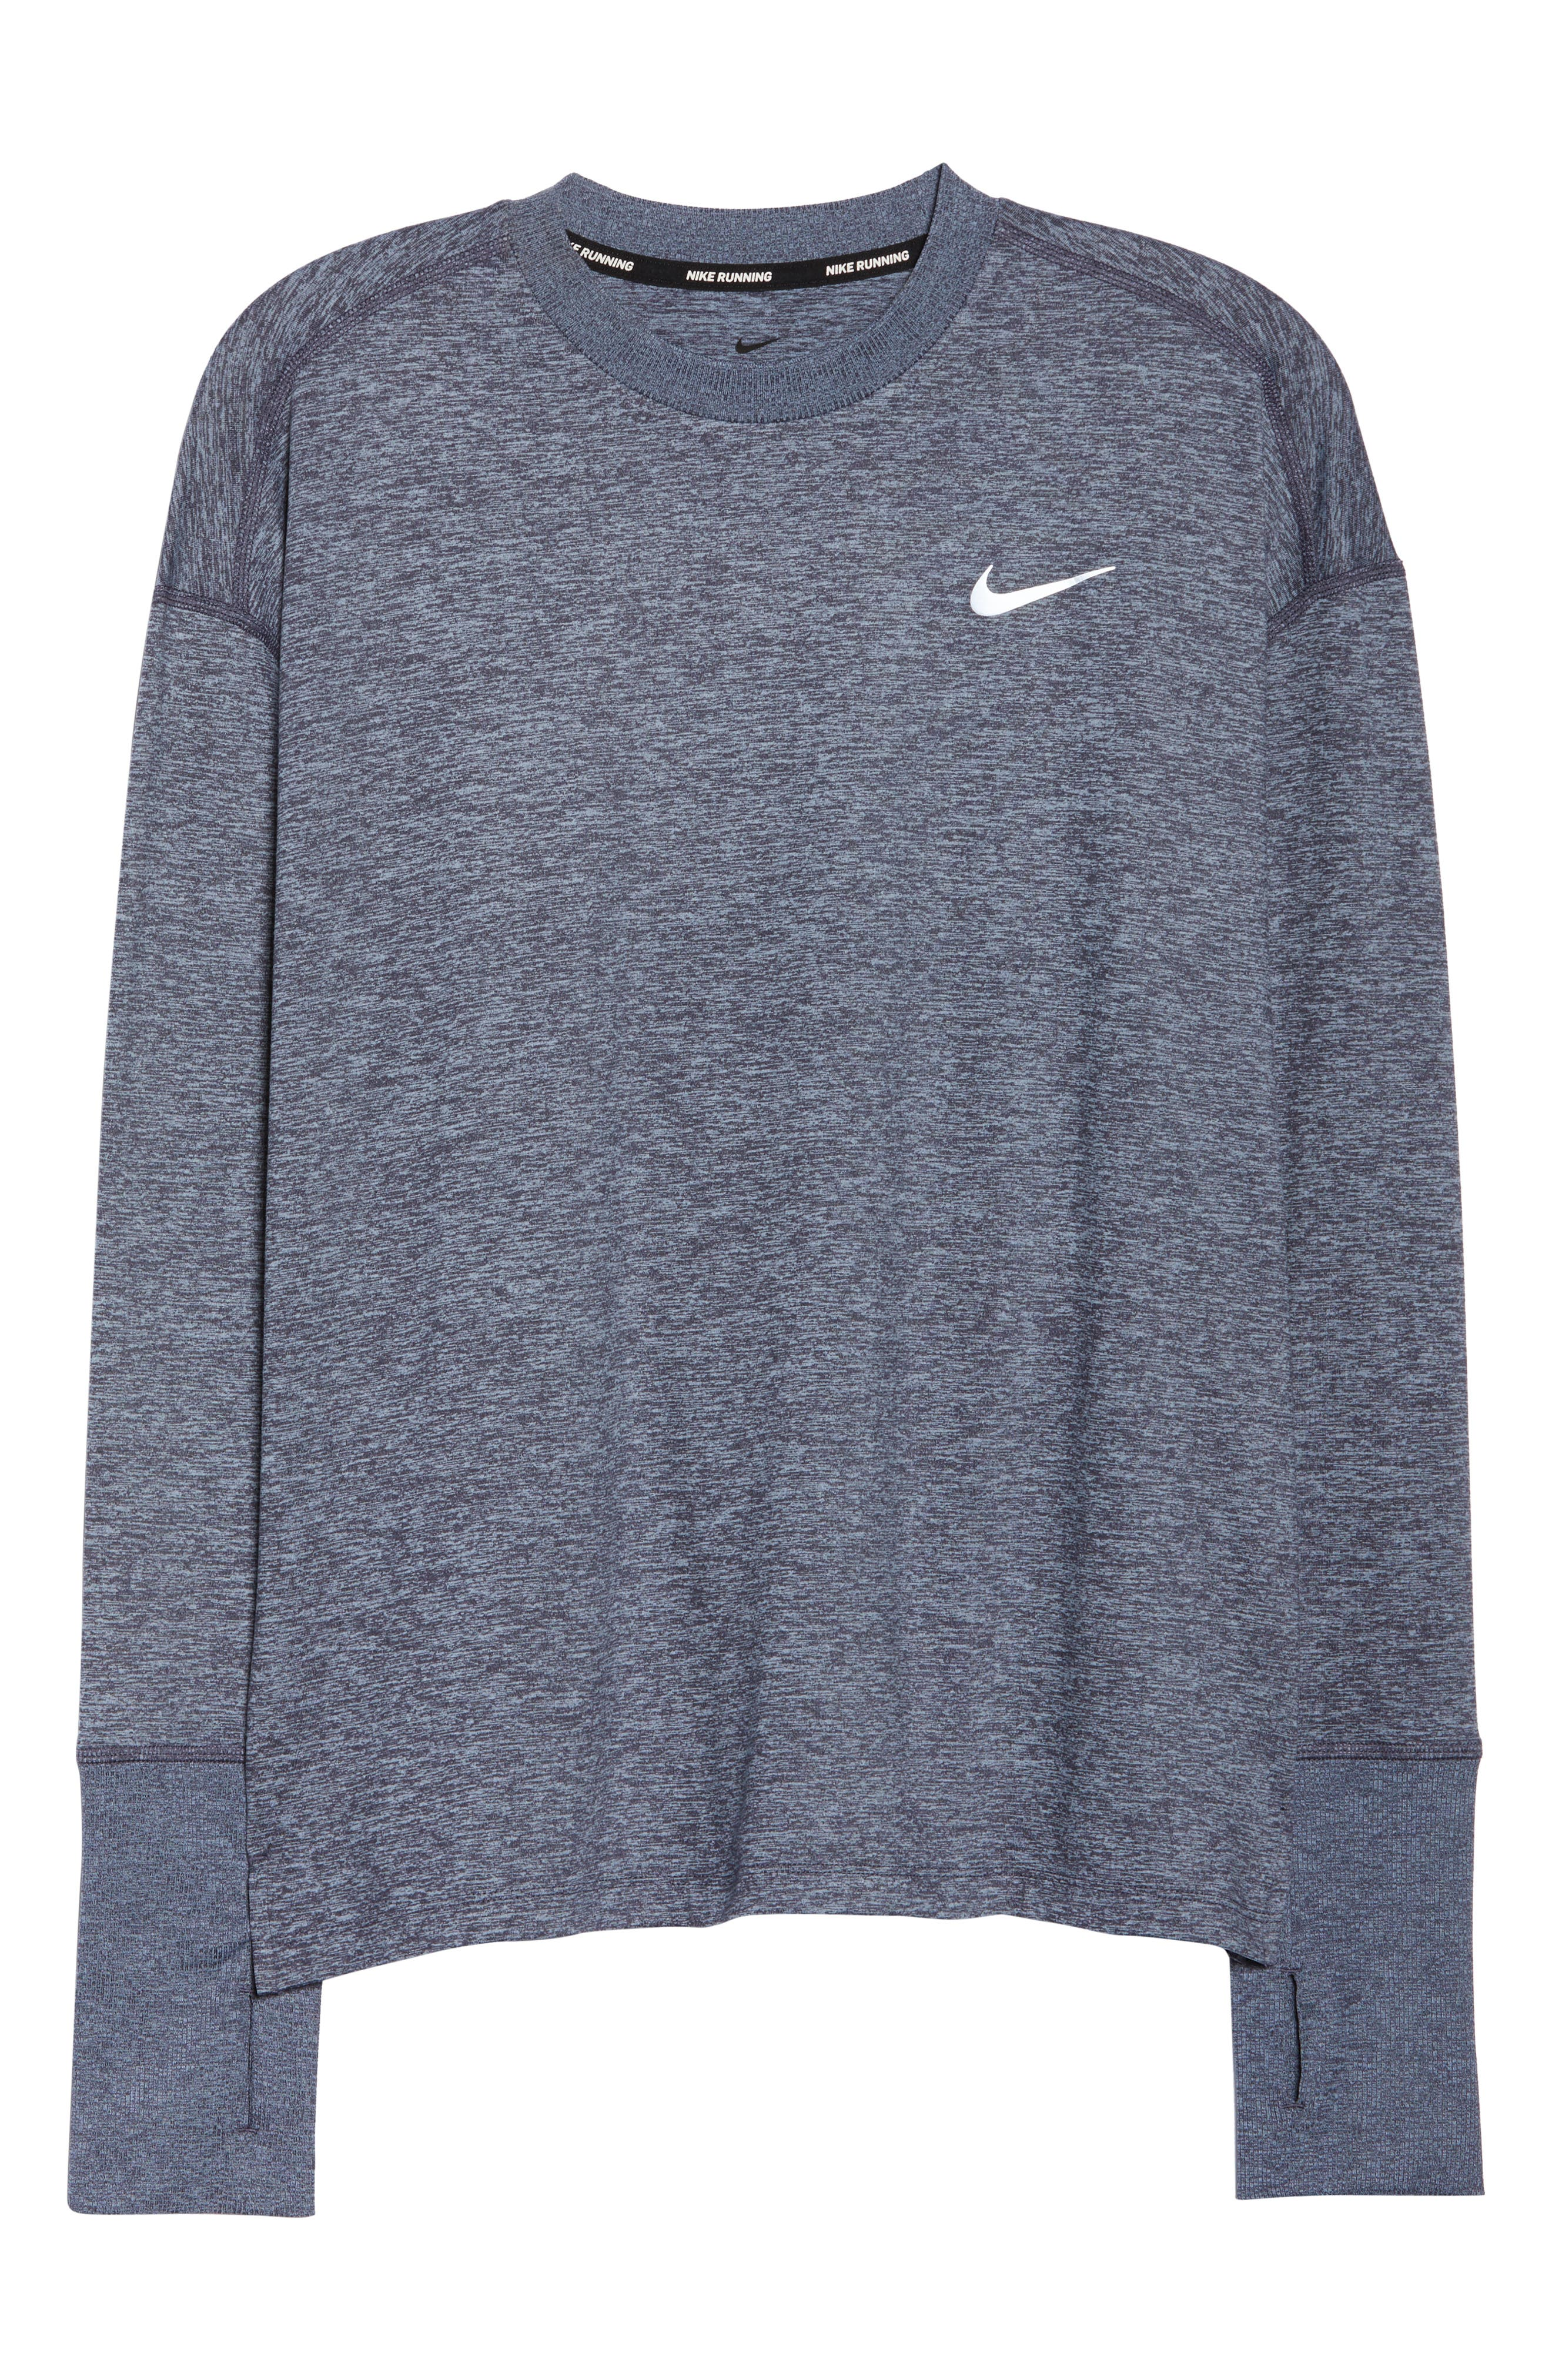 Dry Element Crewneck Top,                             Alternate thumbnail 7, color,                             081